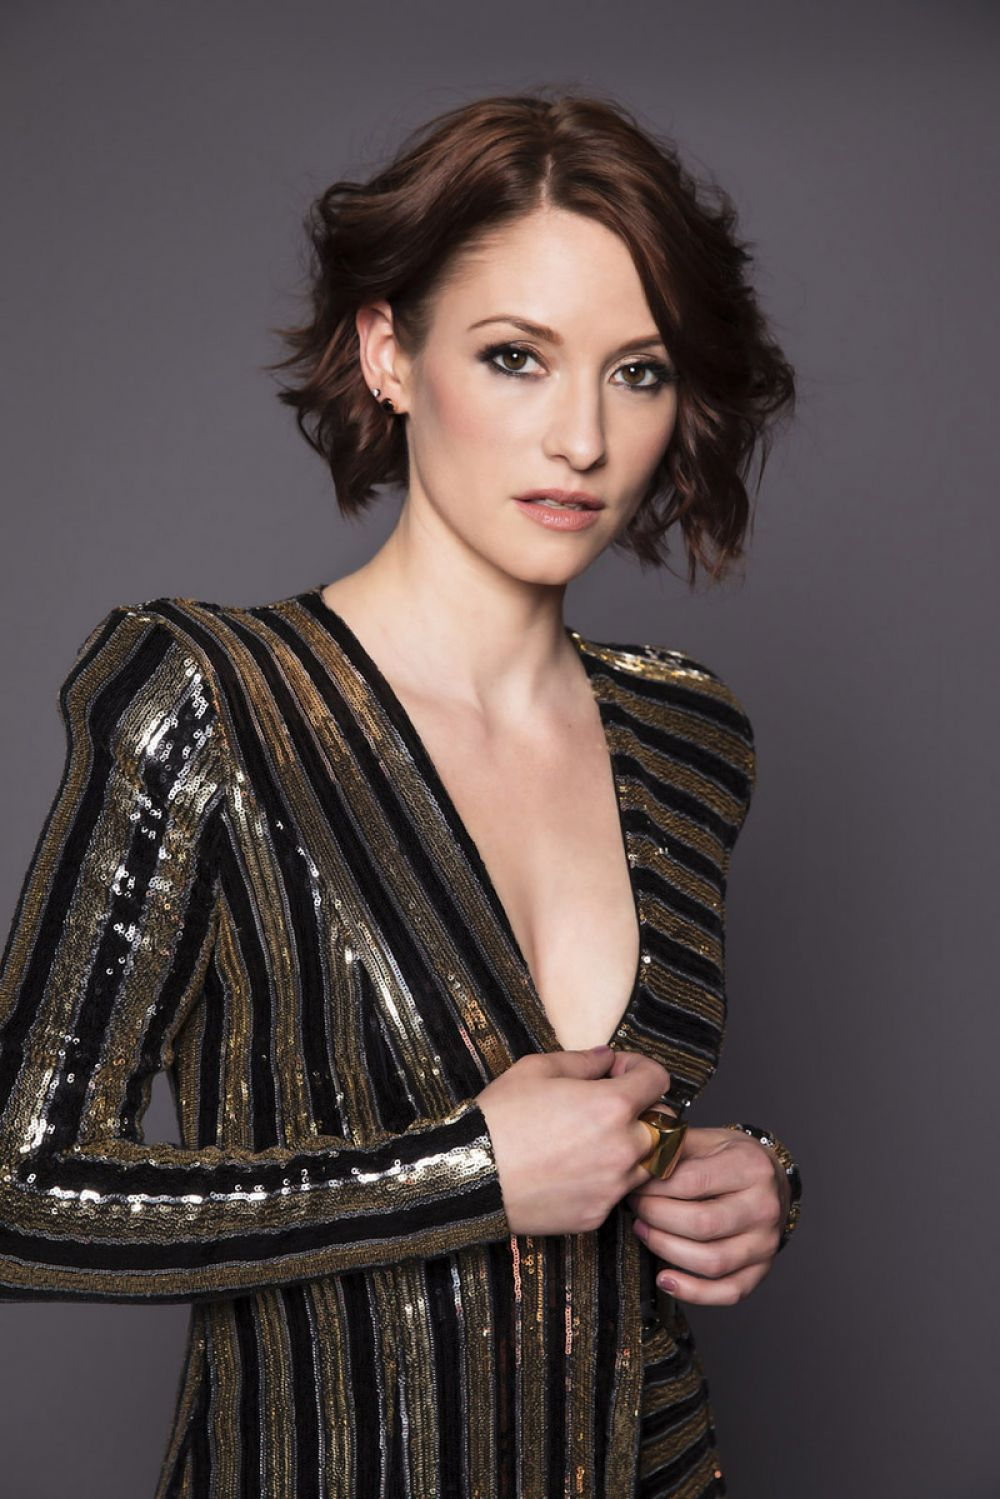 look 2 chyler - photo #25